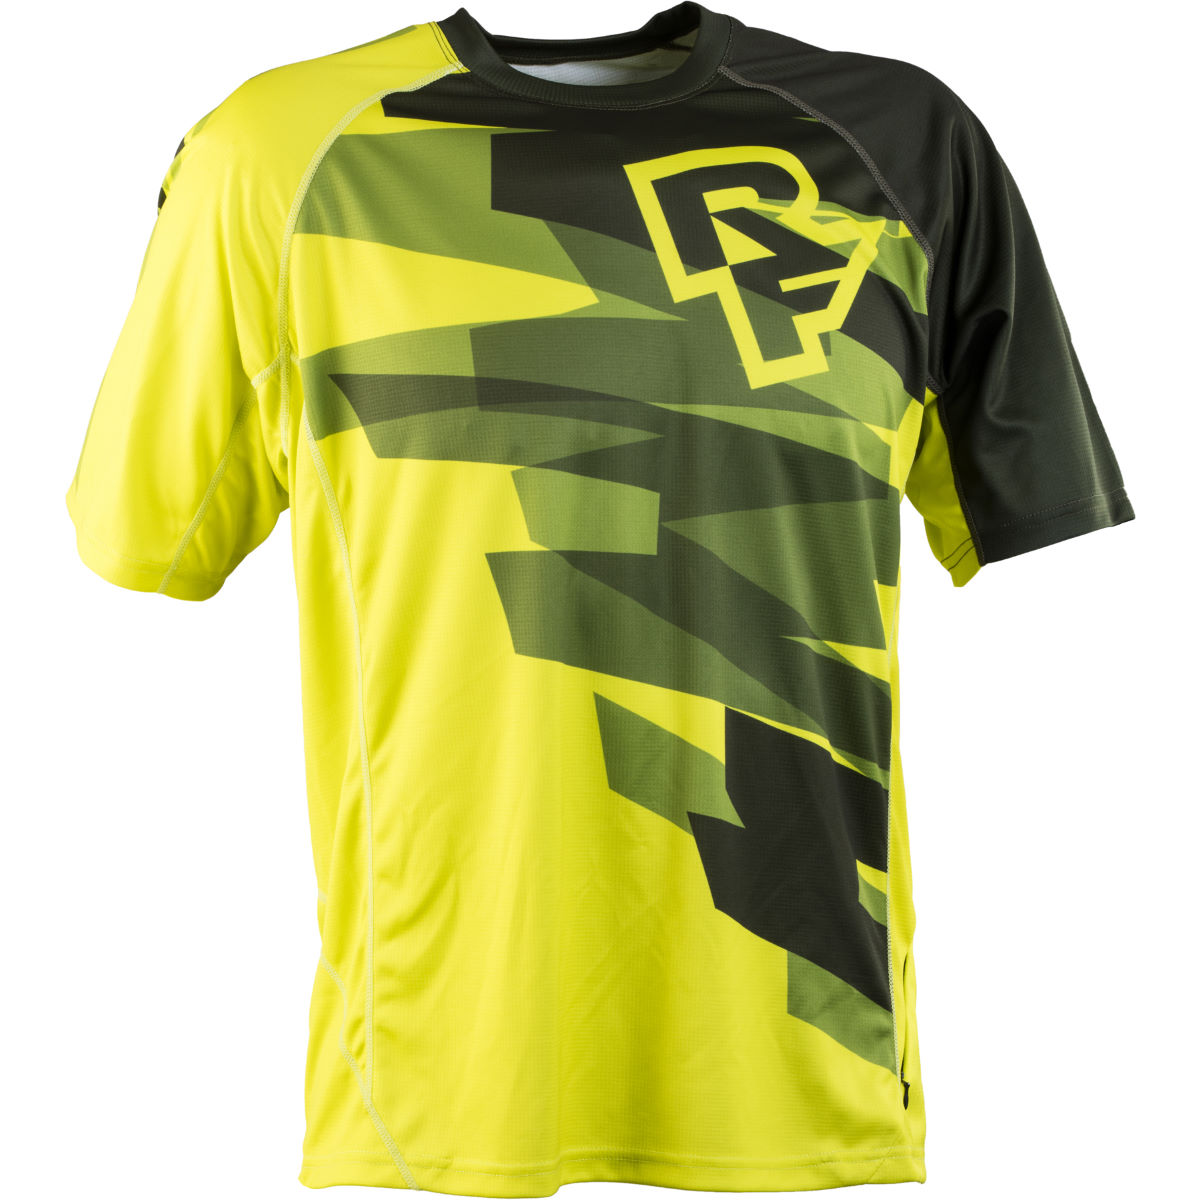 Maillot Race Face Indy (manches courtes, PE16) - S Jaune Maillots